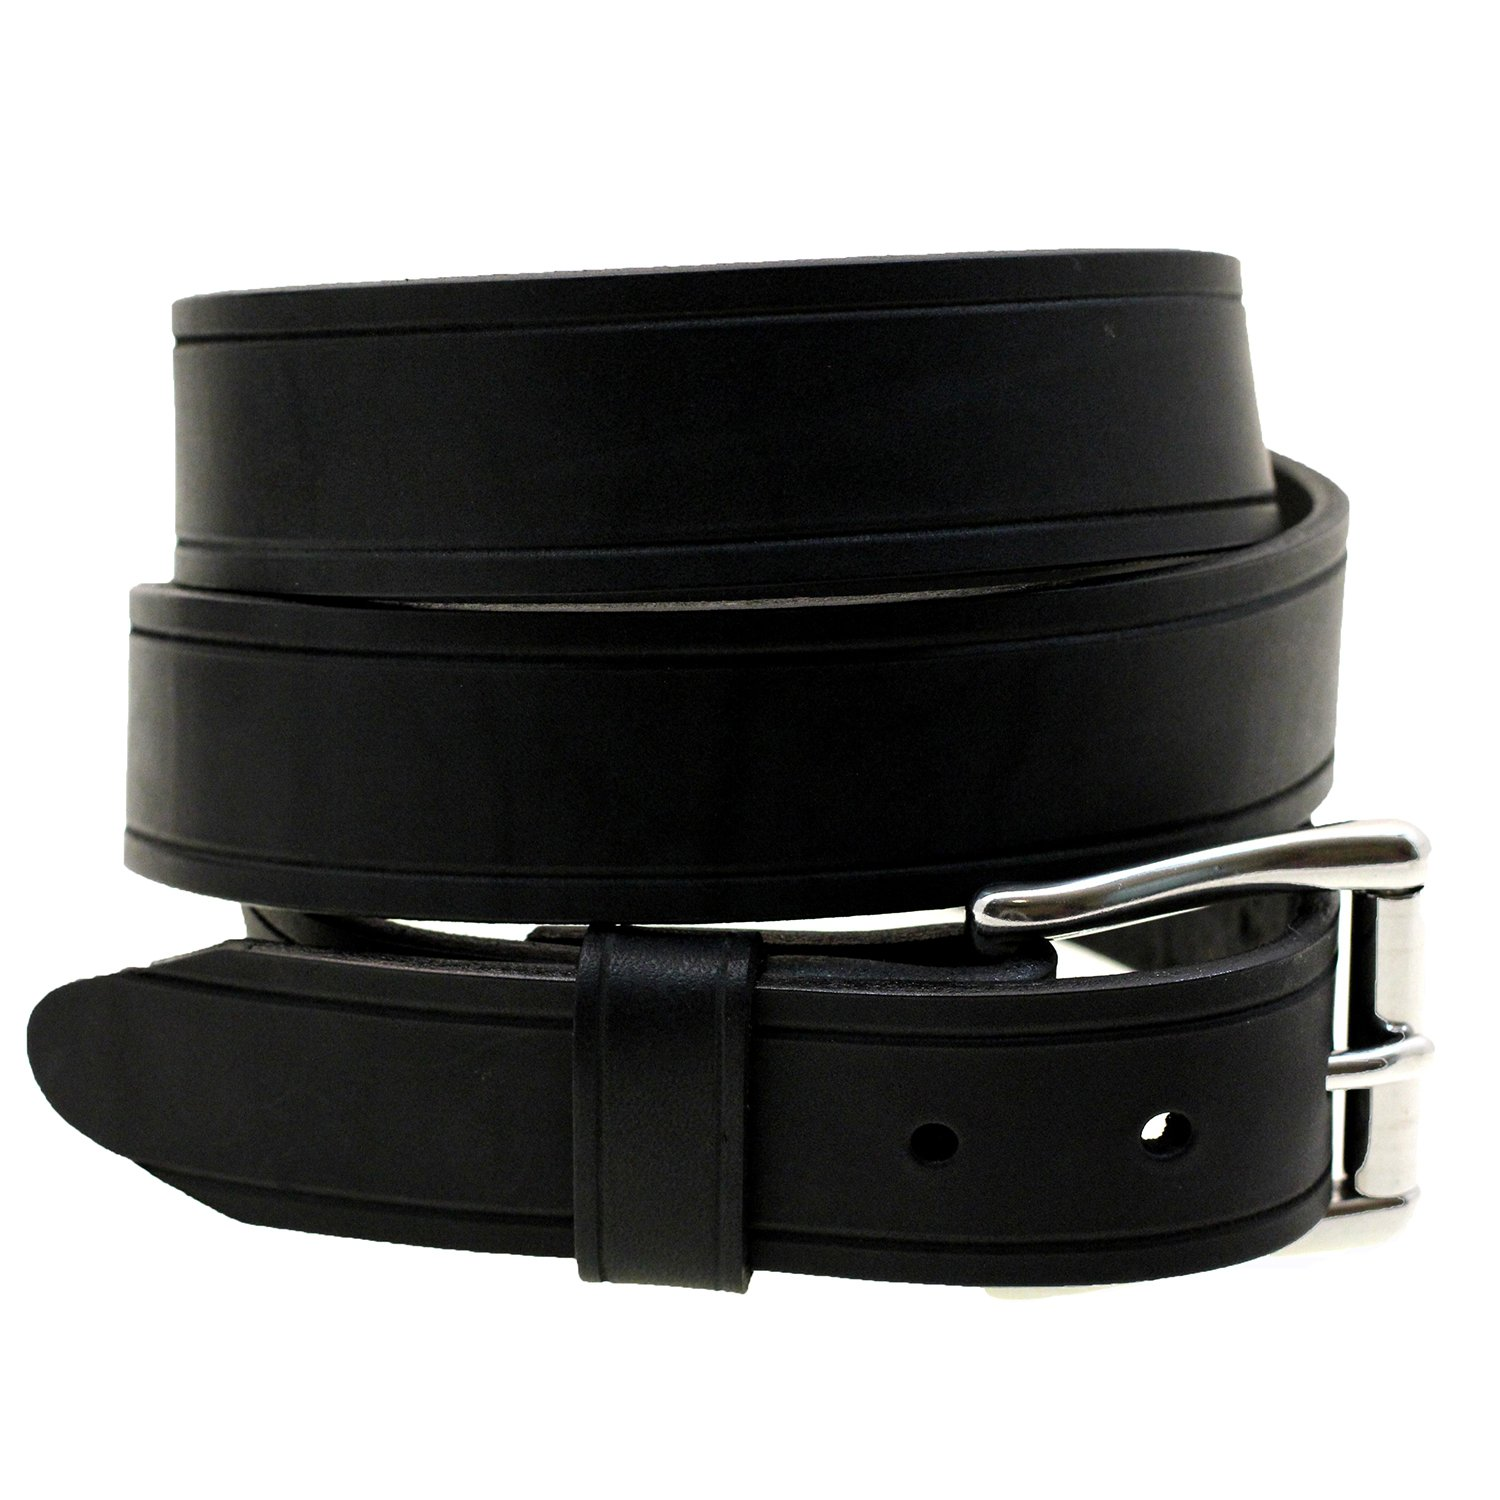 83f8172bd80 Mens 1 1 2 Black Latigo Leather Belt With Saddle Groove Made In USA at  Amazon Men s Clothing store